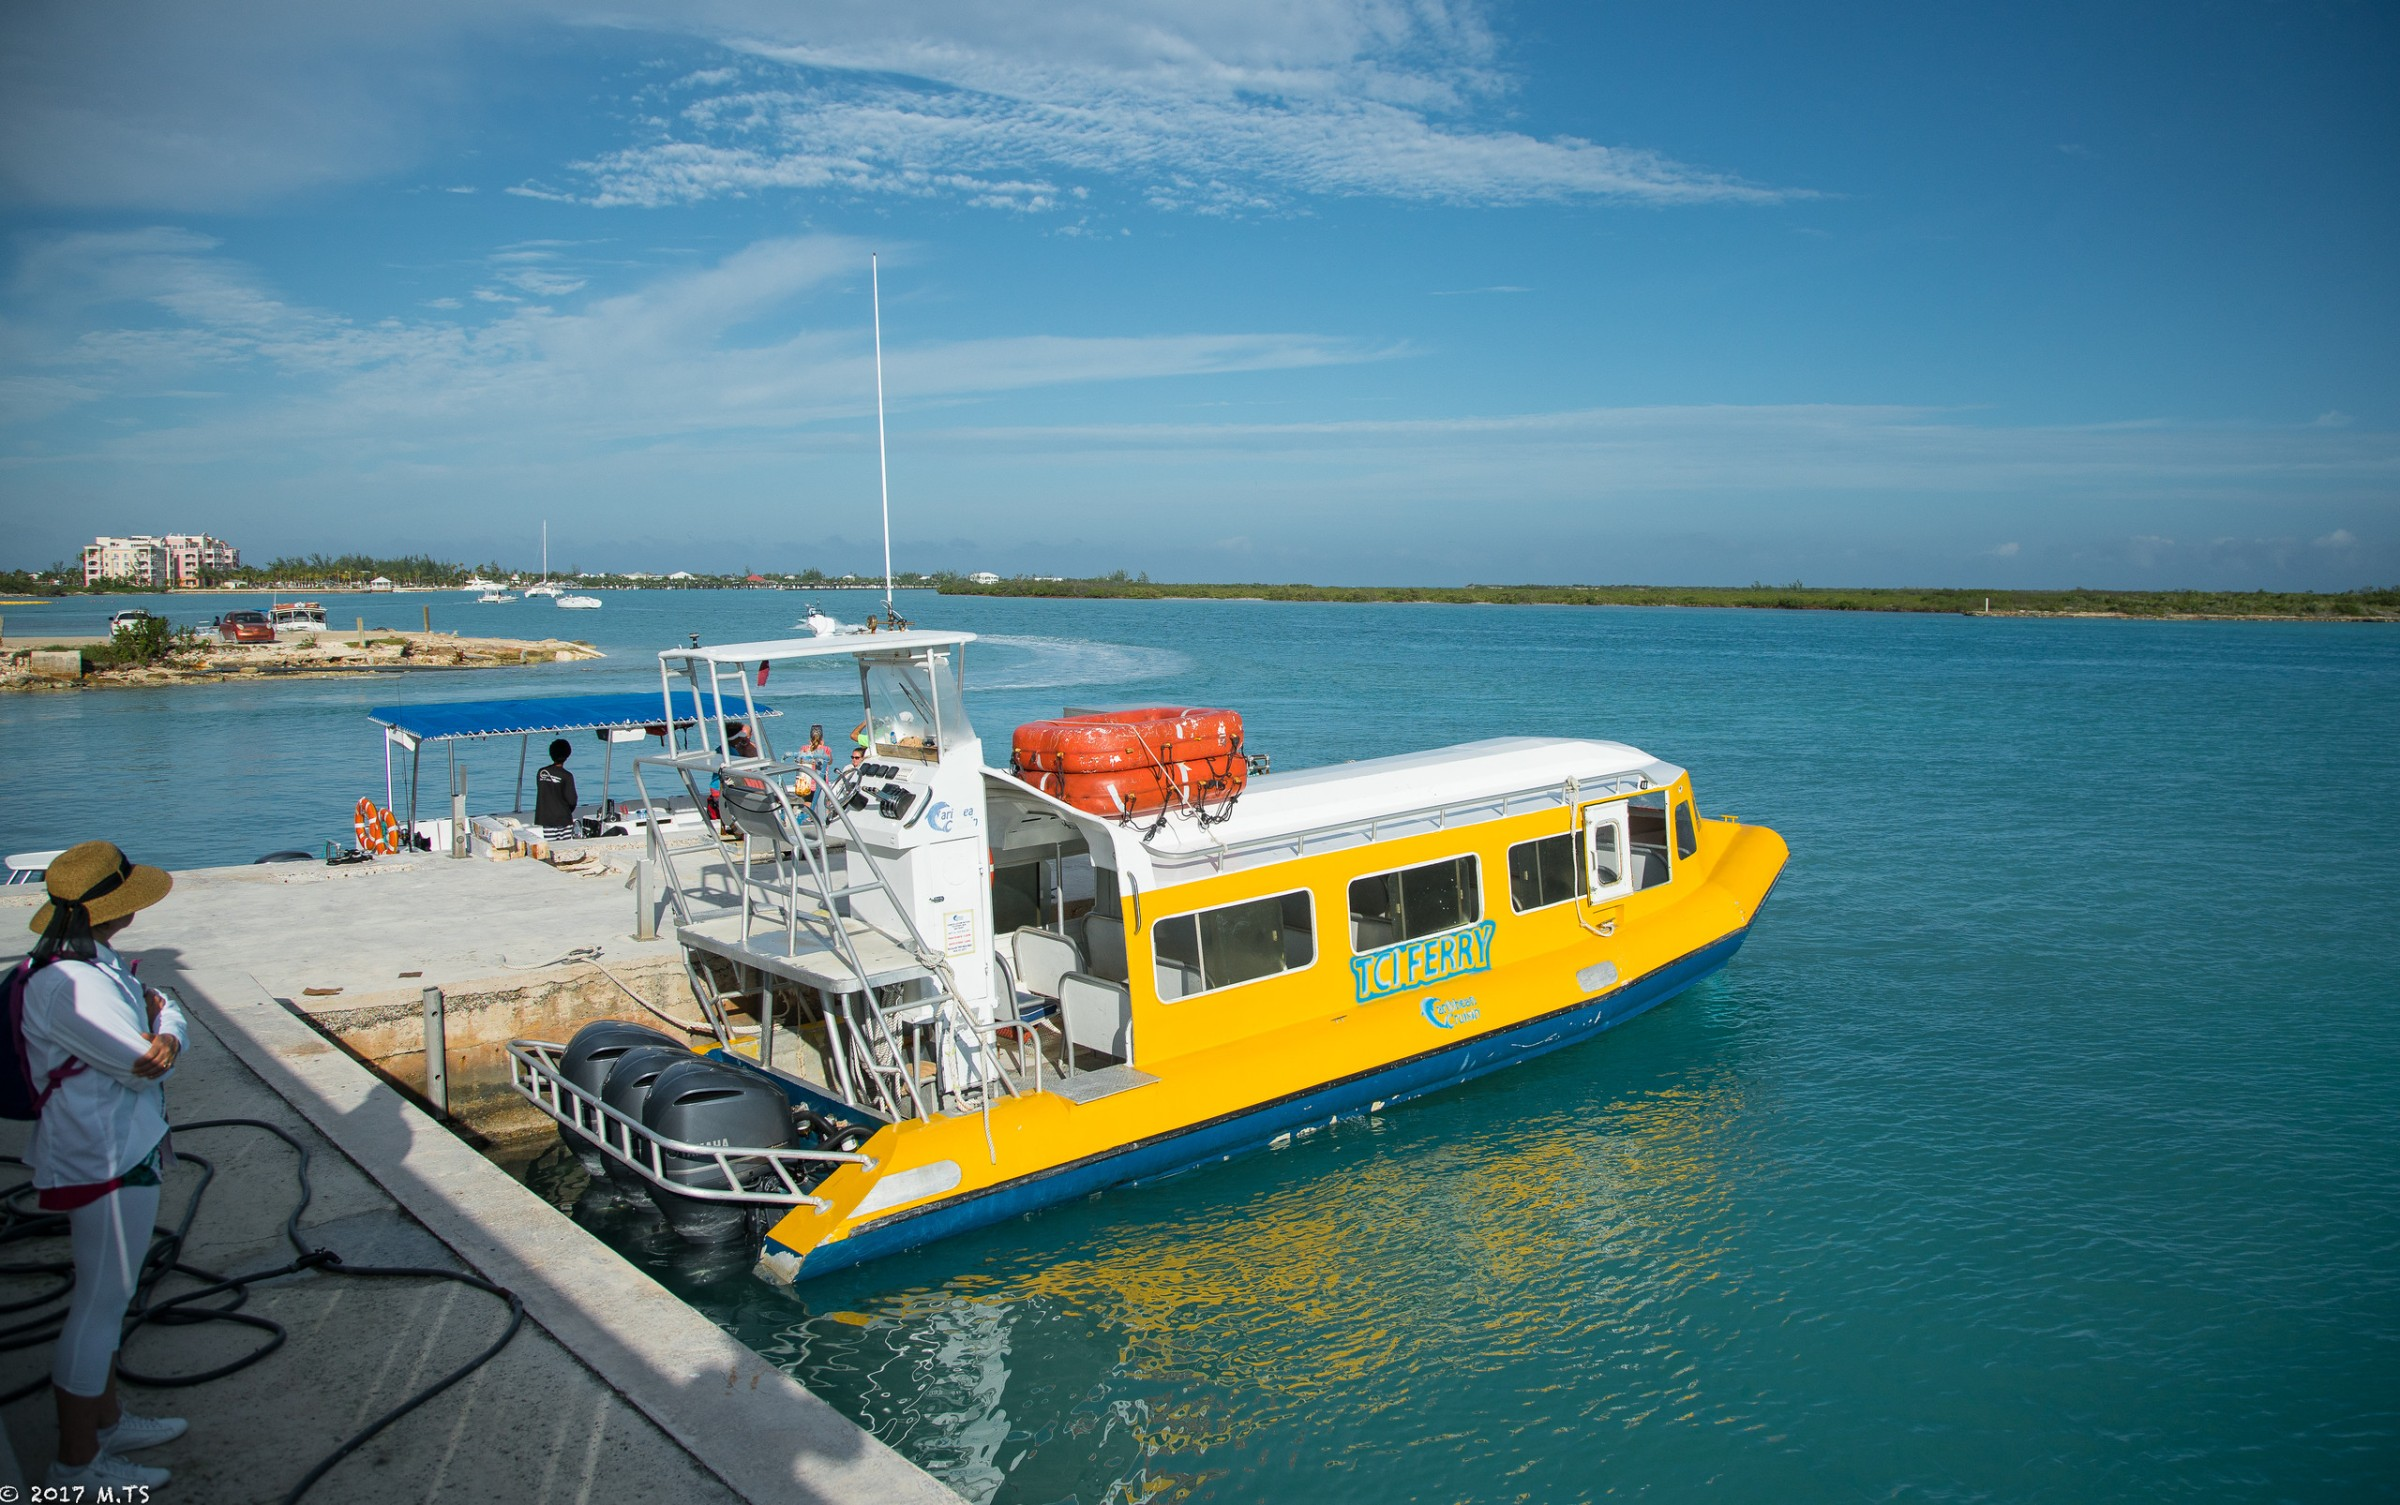 Turks and Caicos Ferry Pier, Turks and Caicos Islands